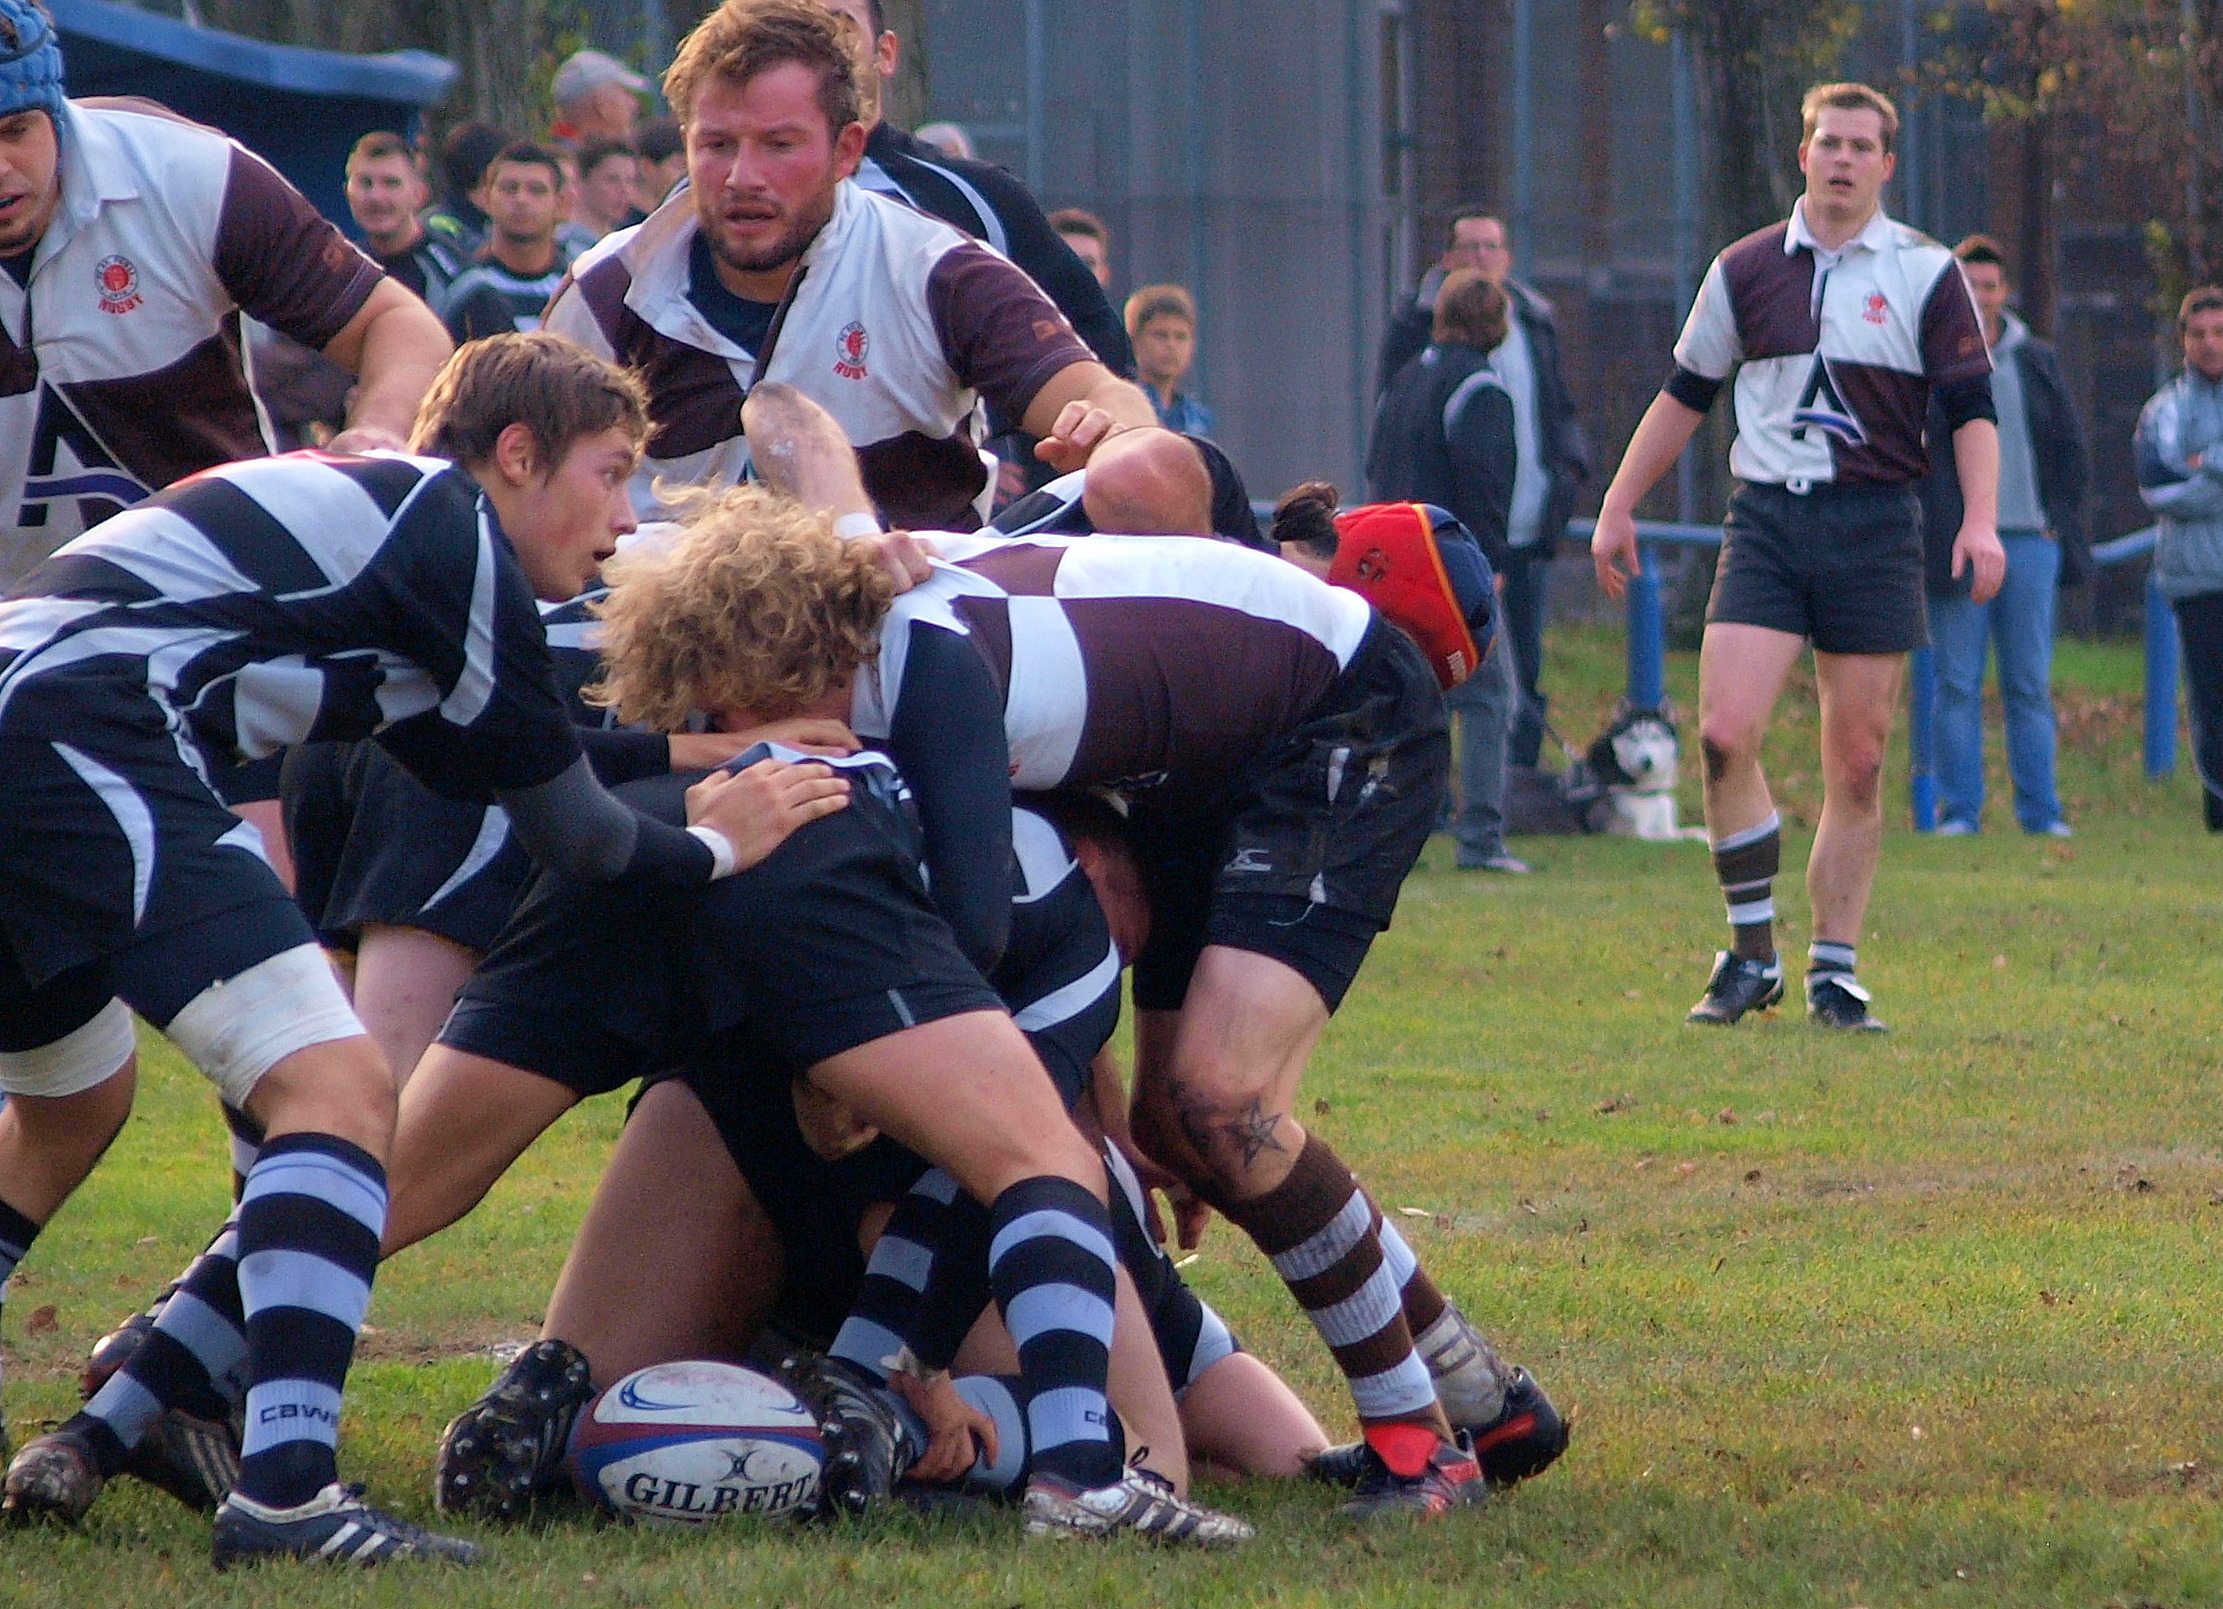 Rugby Club St. Pauli (brown/white)